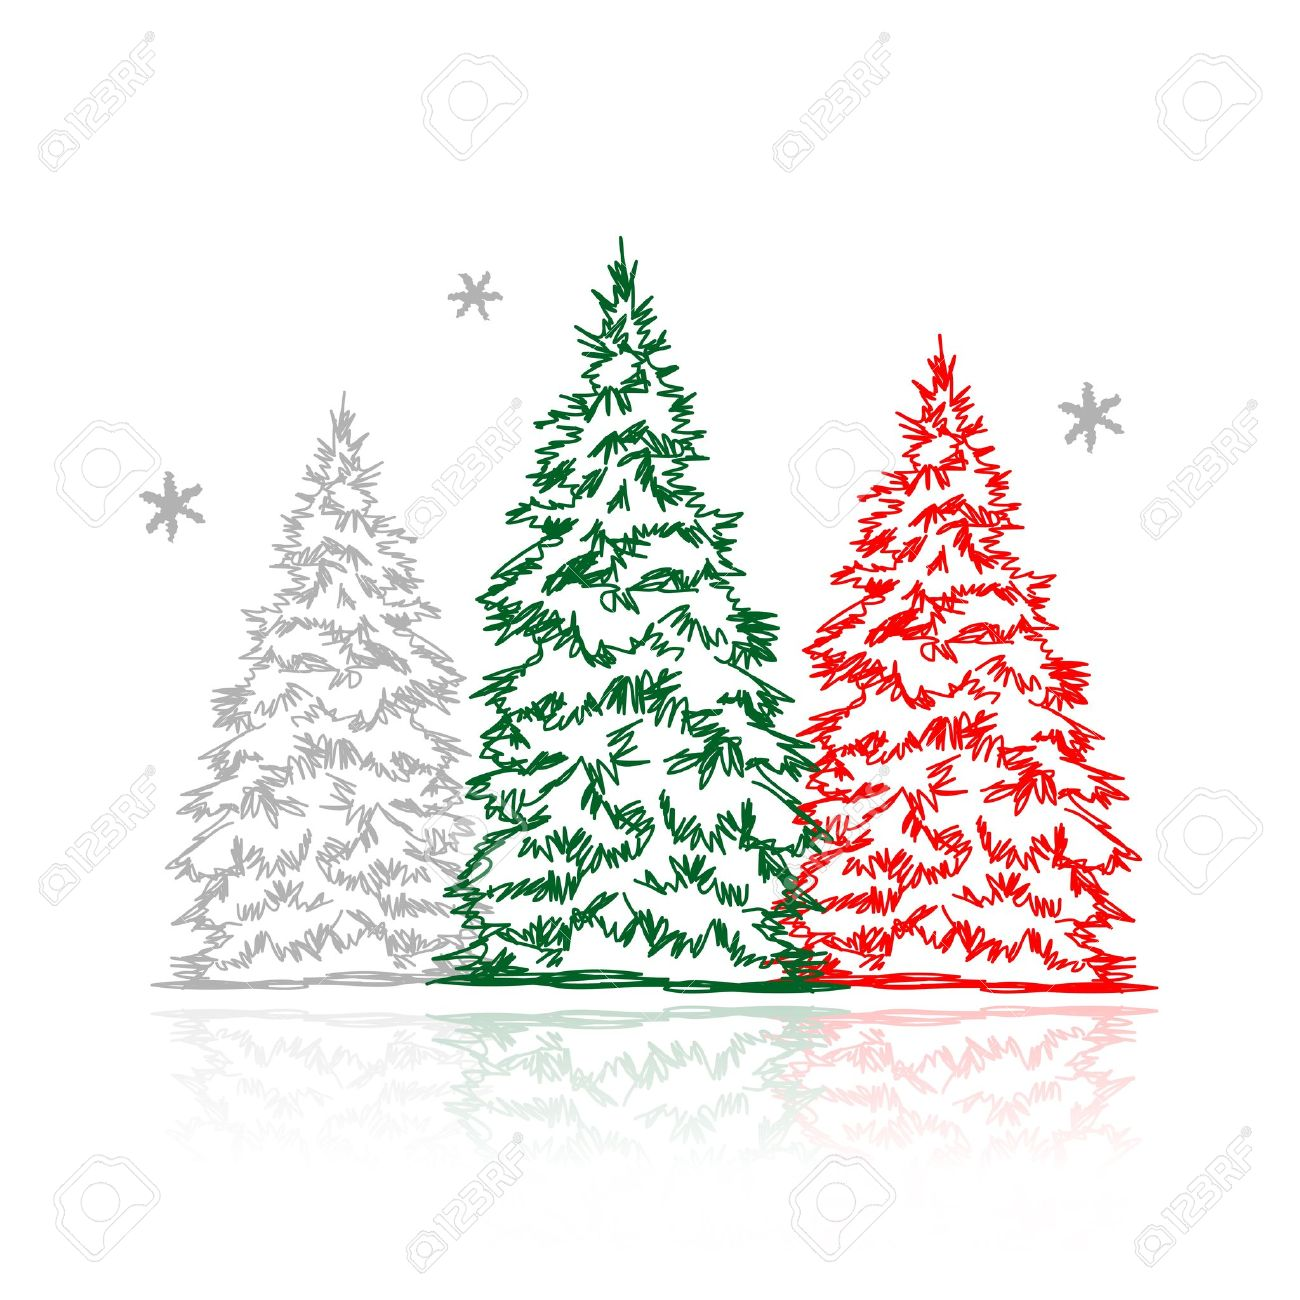 Uncategorized Drawn Christmas Trees hand drawn winter trees for your design royalty free cliparts stock vector 15478202